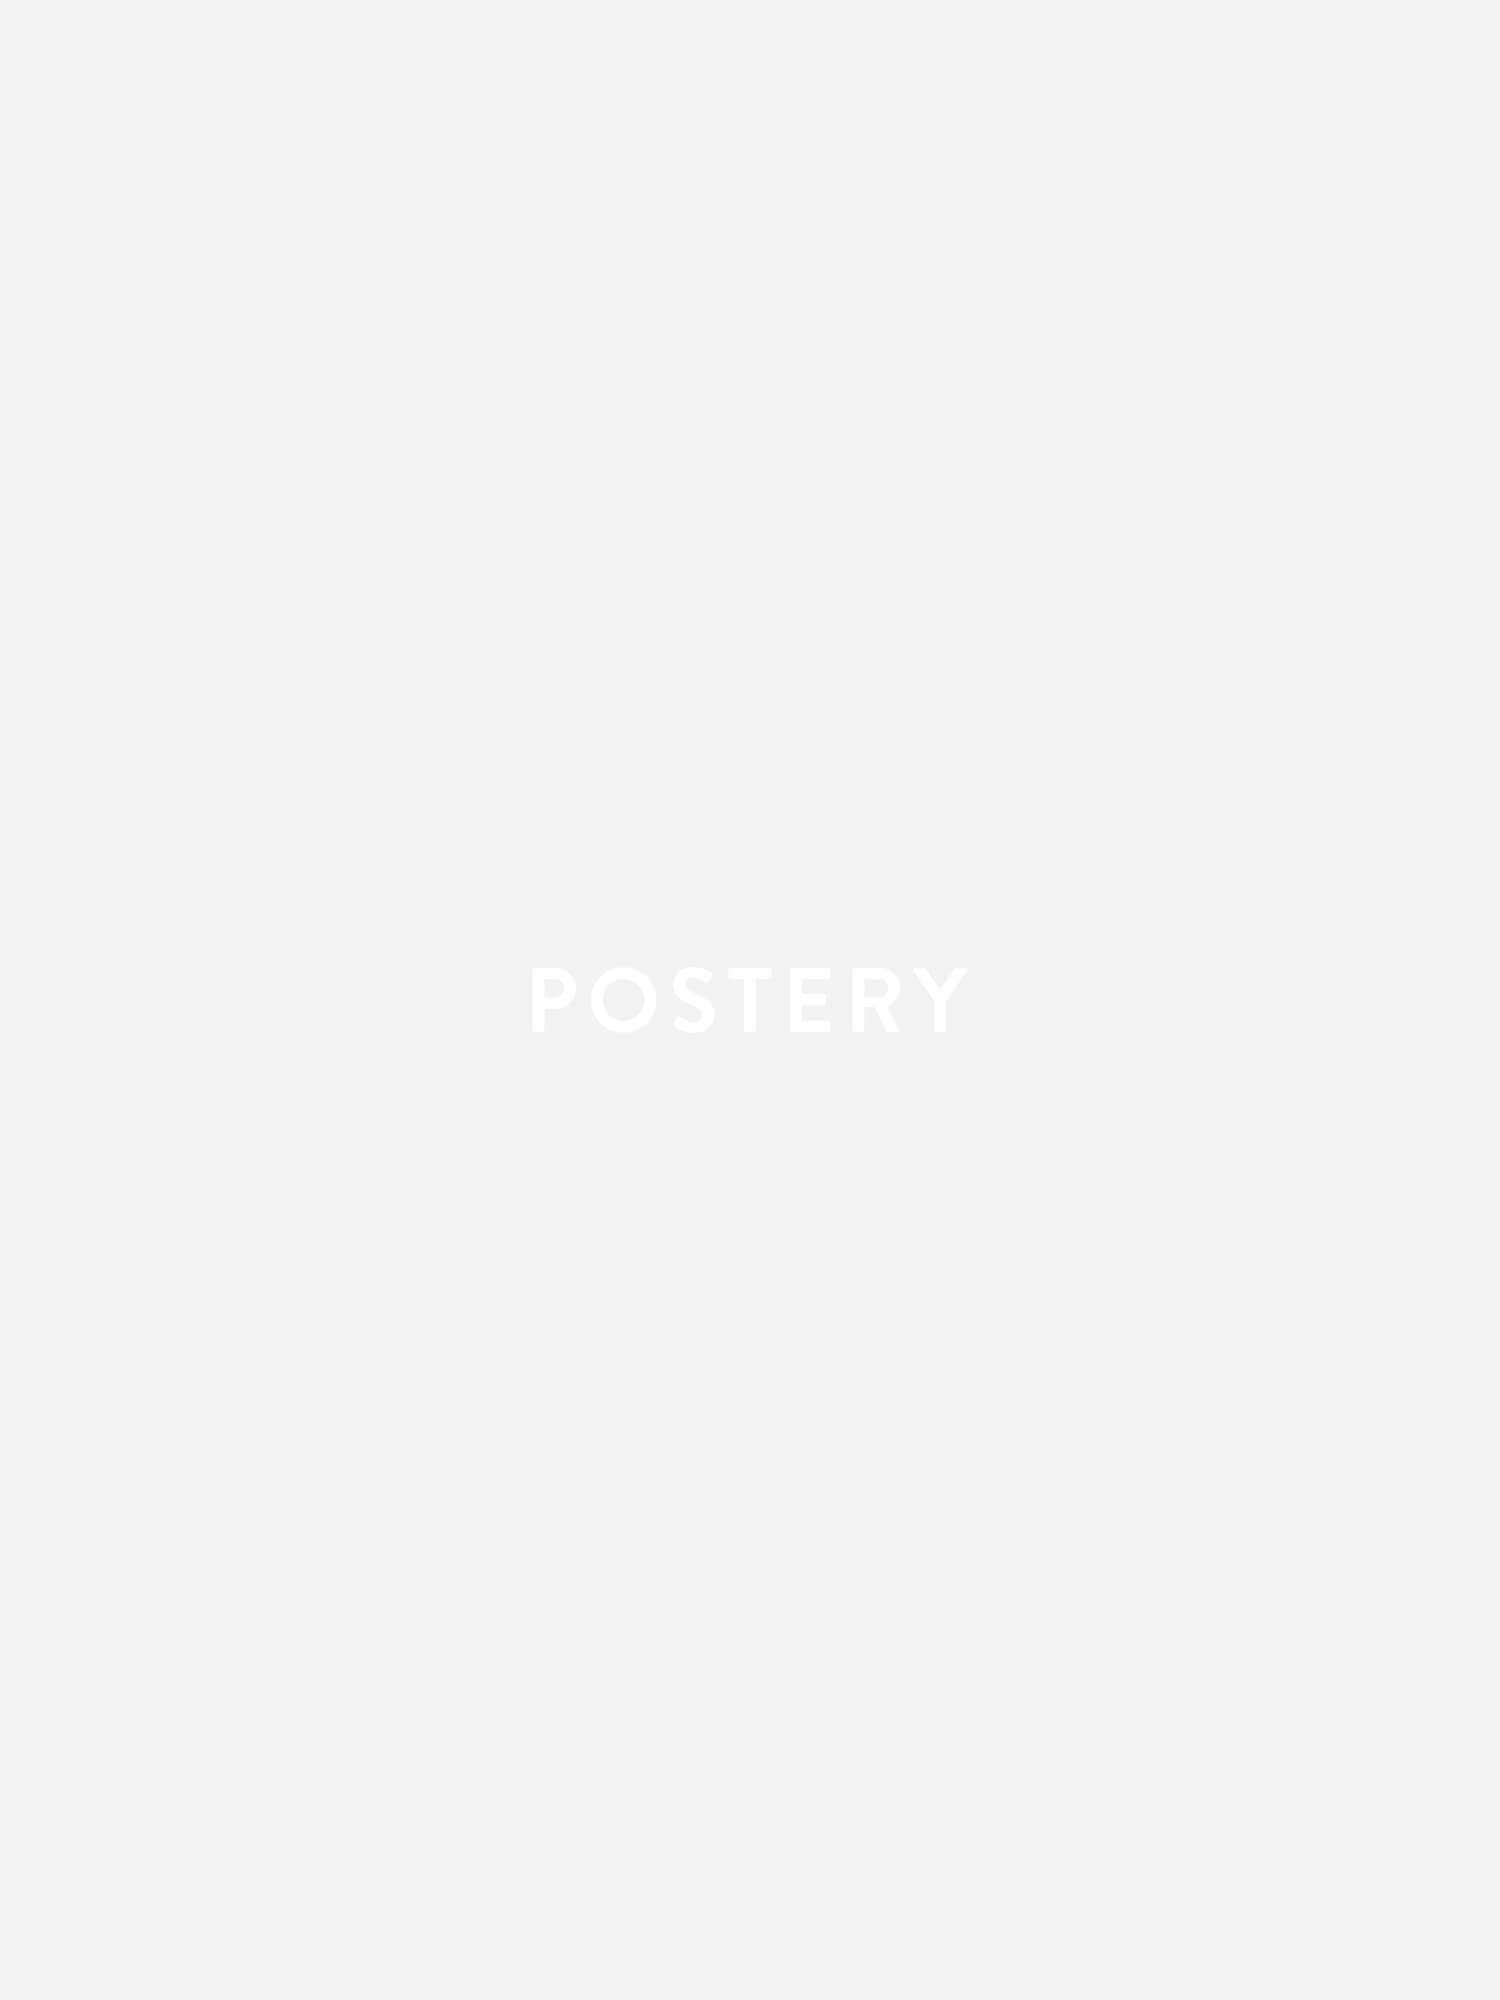 Santorini Buildings Poster